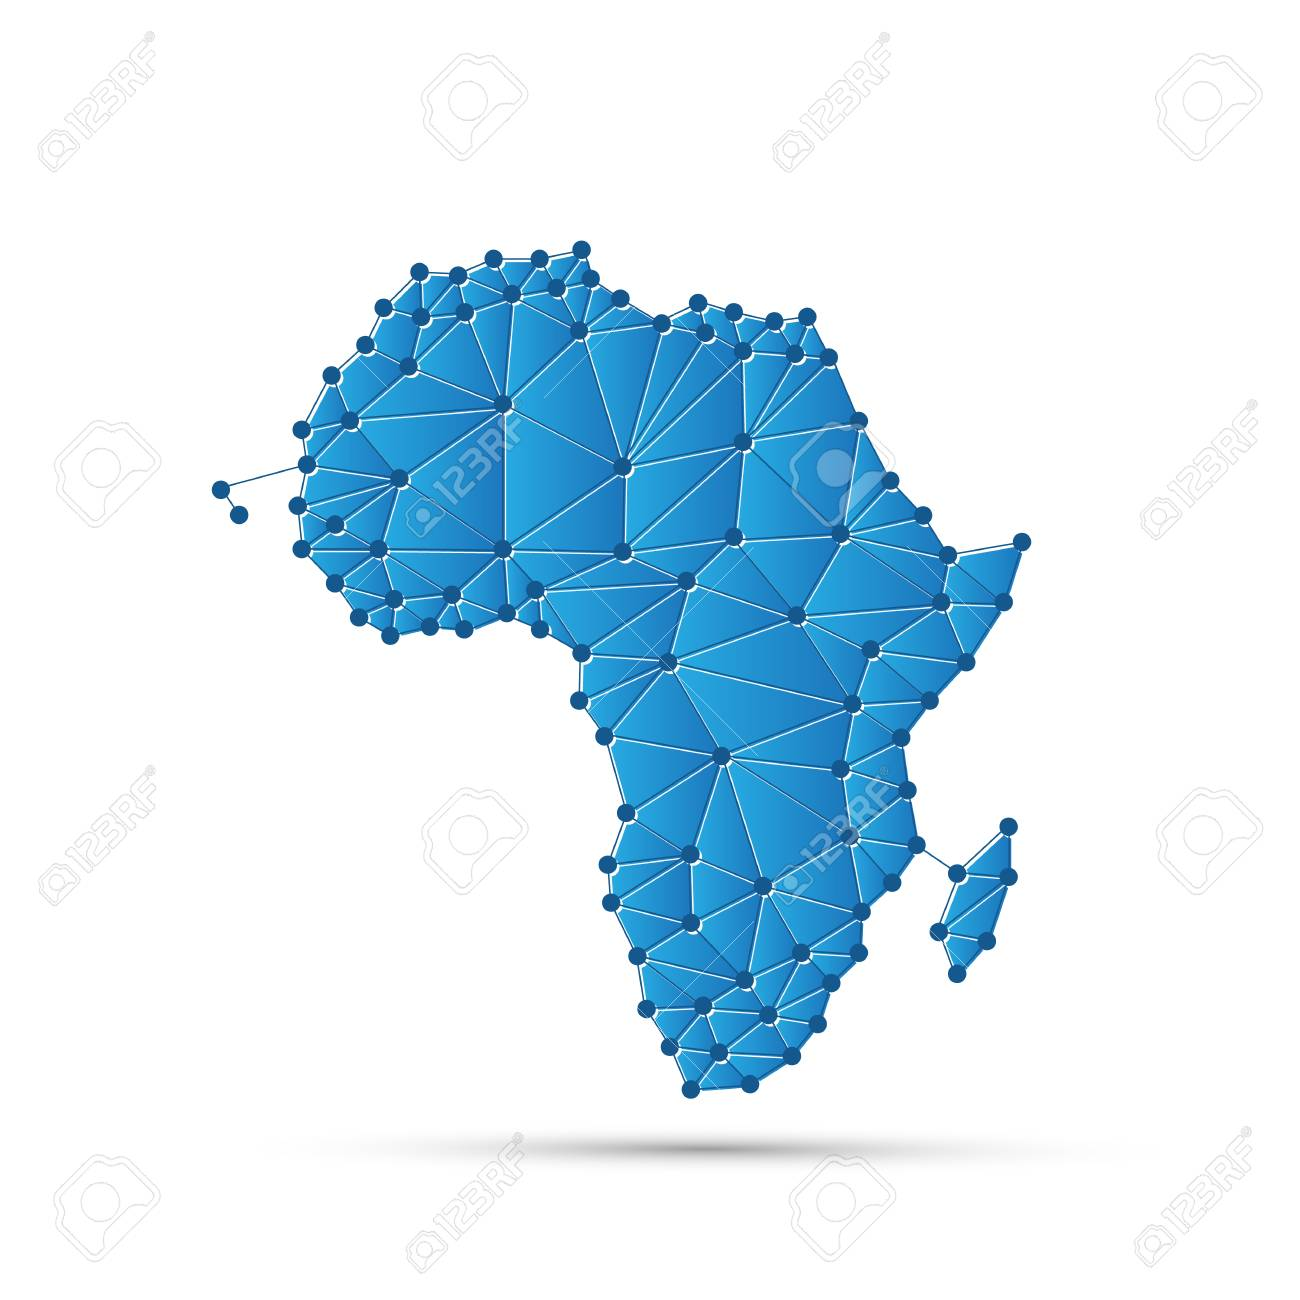 Digital Map Of Africa Abstract Polygonal Map Of Africa With Digital Network Connections